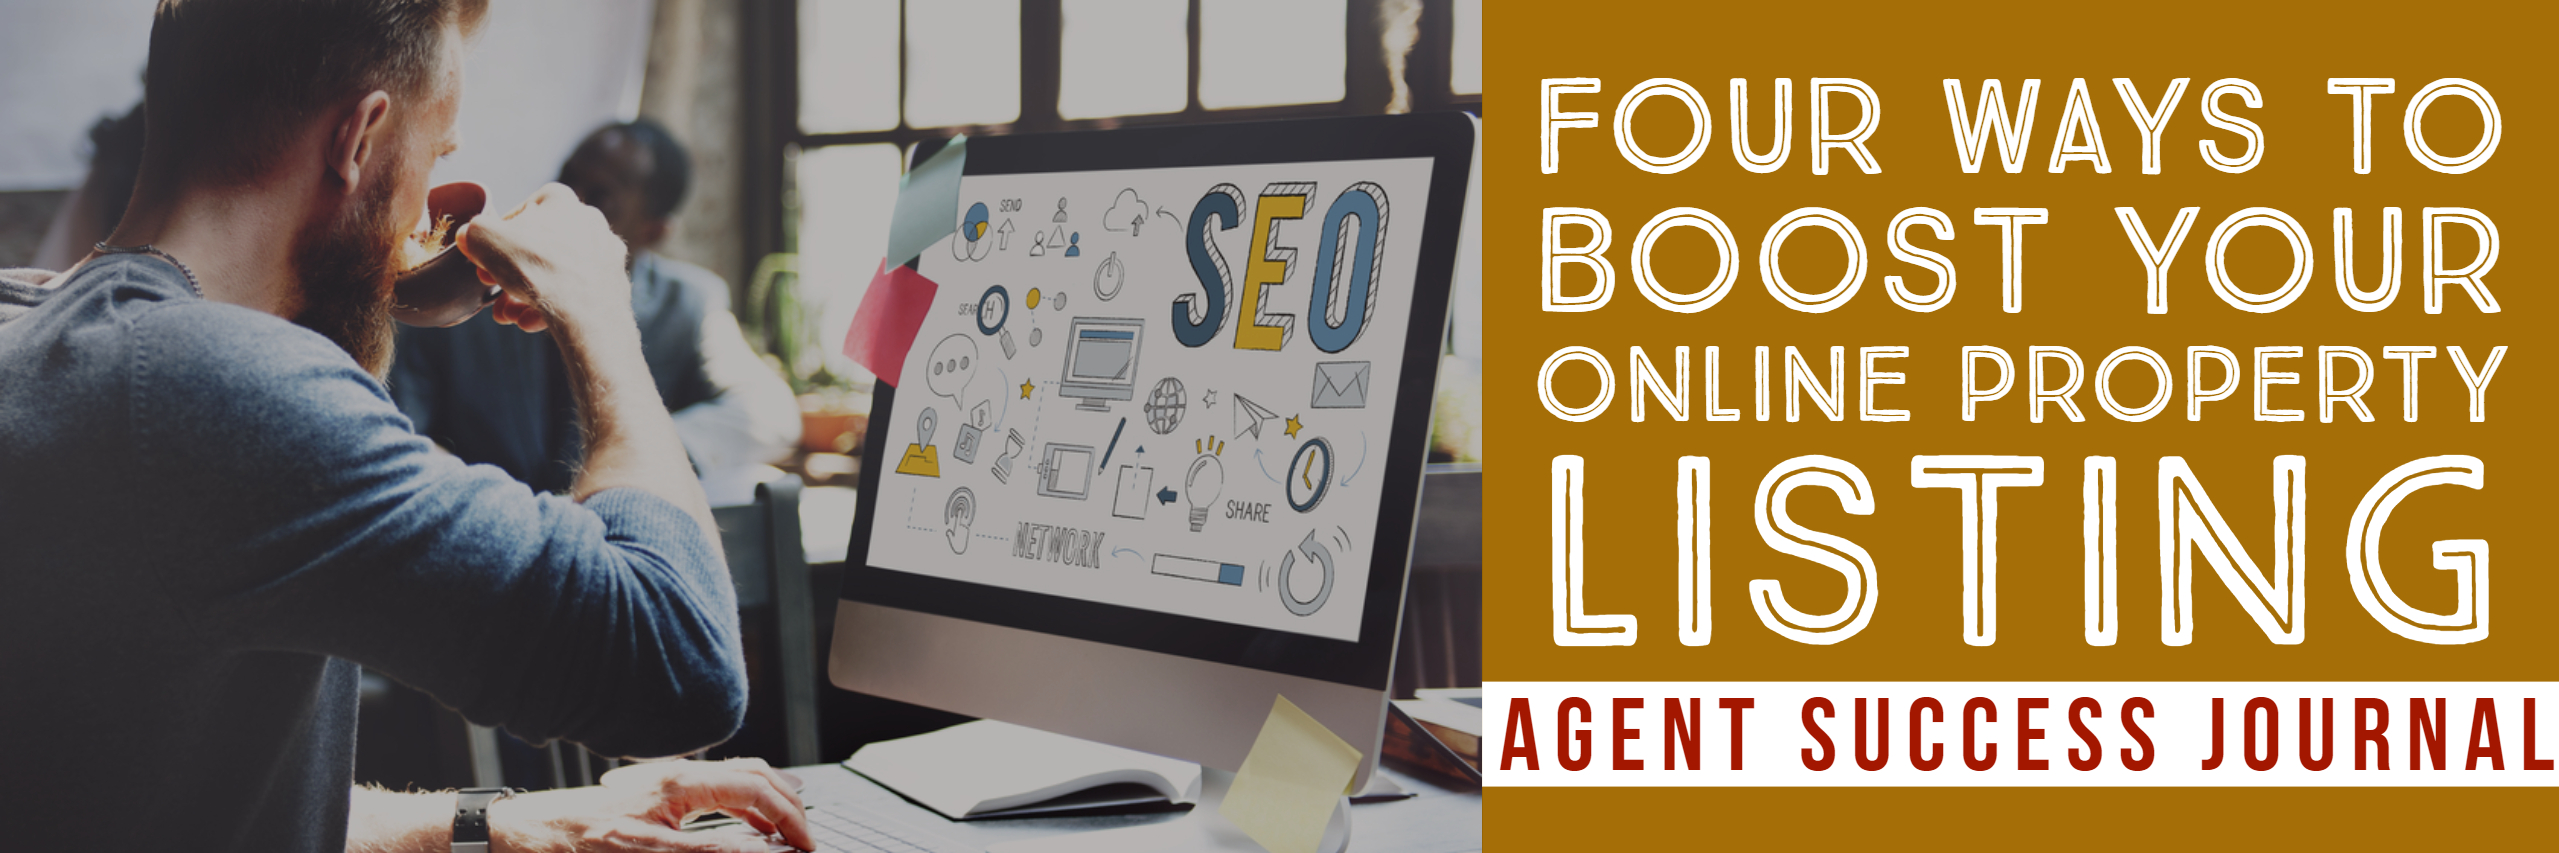 best real estate agent in Los Angeles best real estate agent Paul Argueta Four Ways To Boost Your Online Property Listing